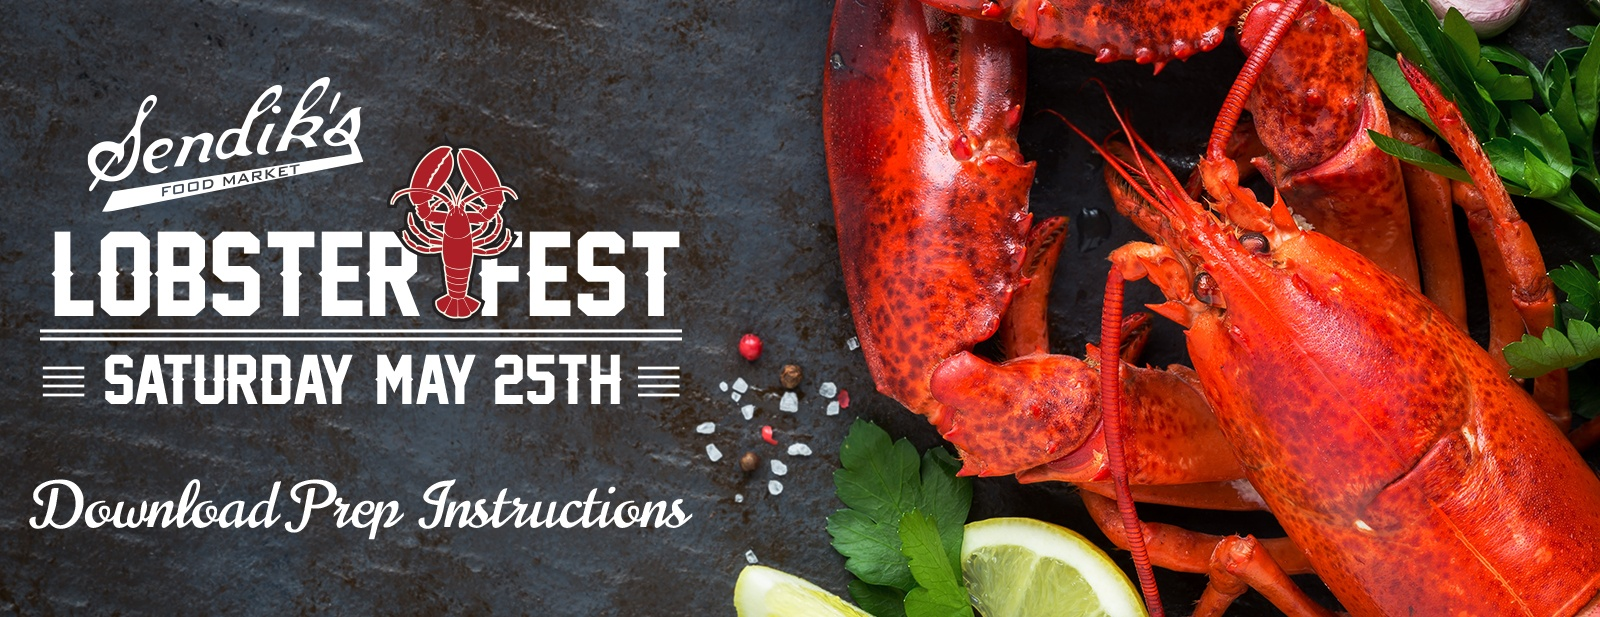 Lobsterfest Prep Instructions